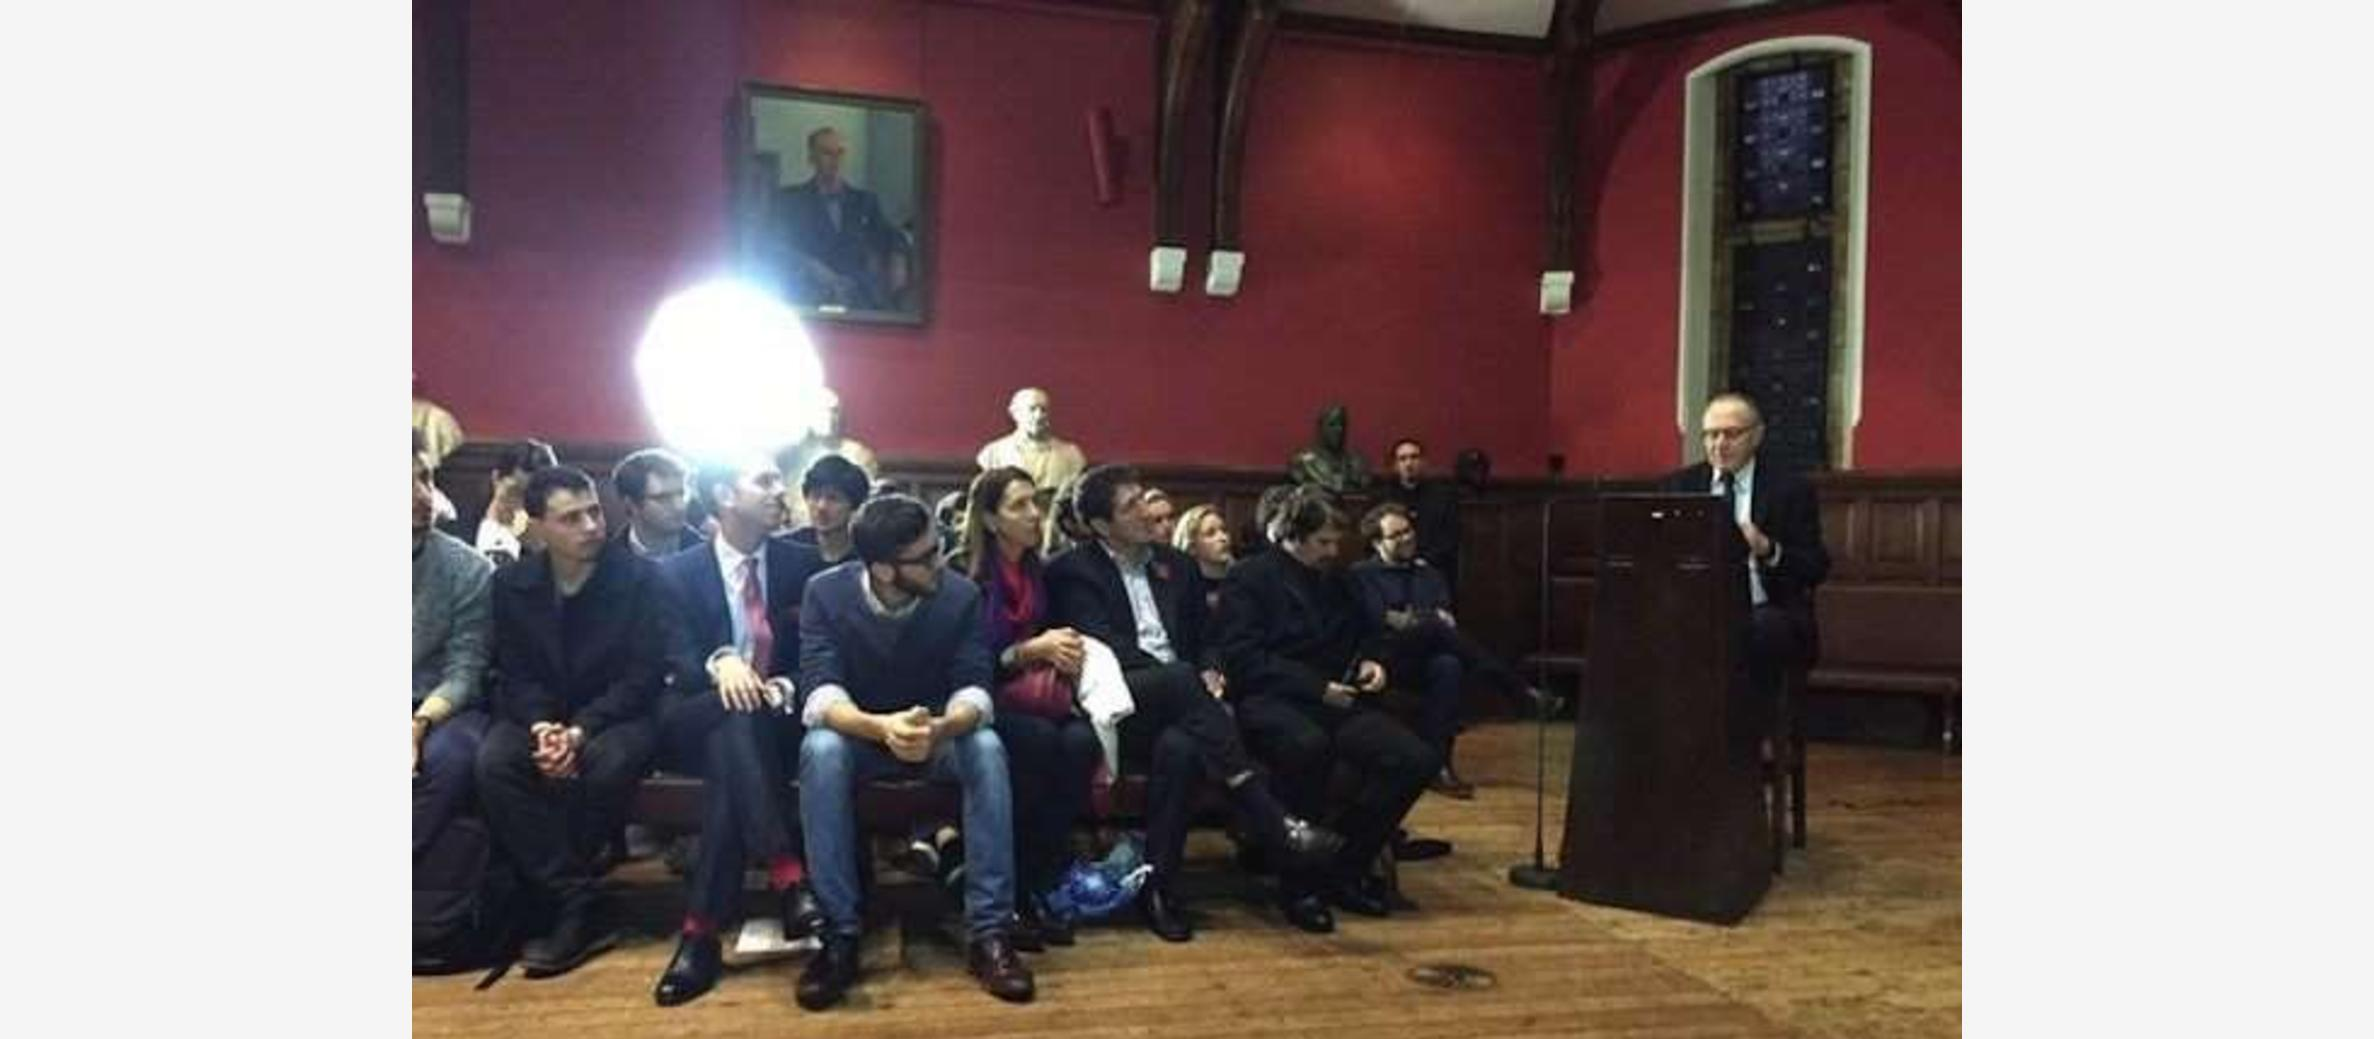 Oxford Union votes to oppose Israel boycott after Dershowitz debate victory